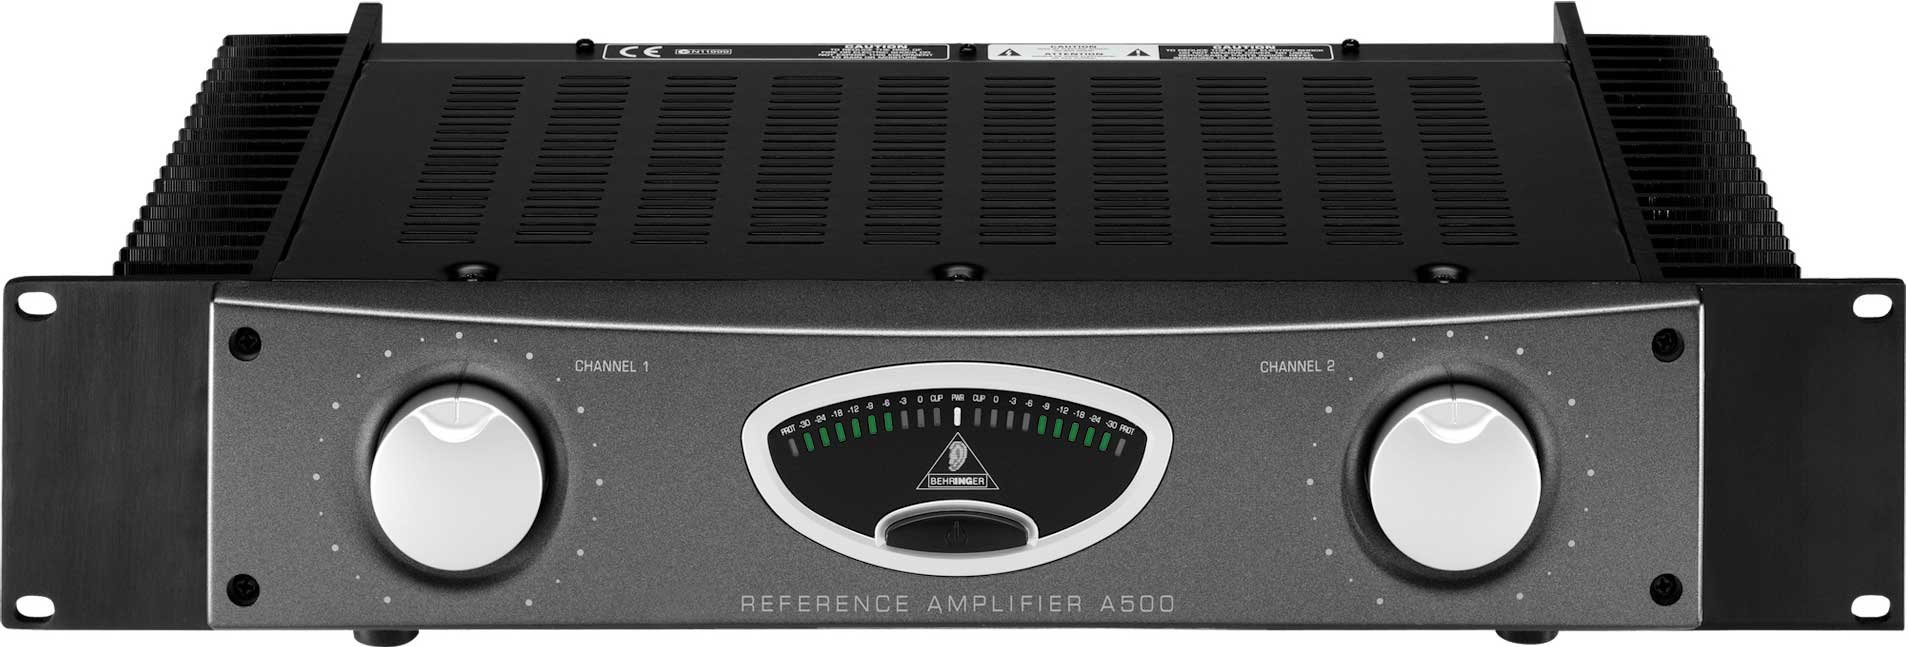 Reference Power Amplifier, Stereo, 300W per Channel @ 4 Ohms